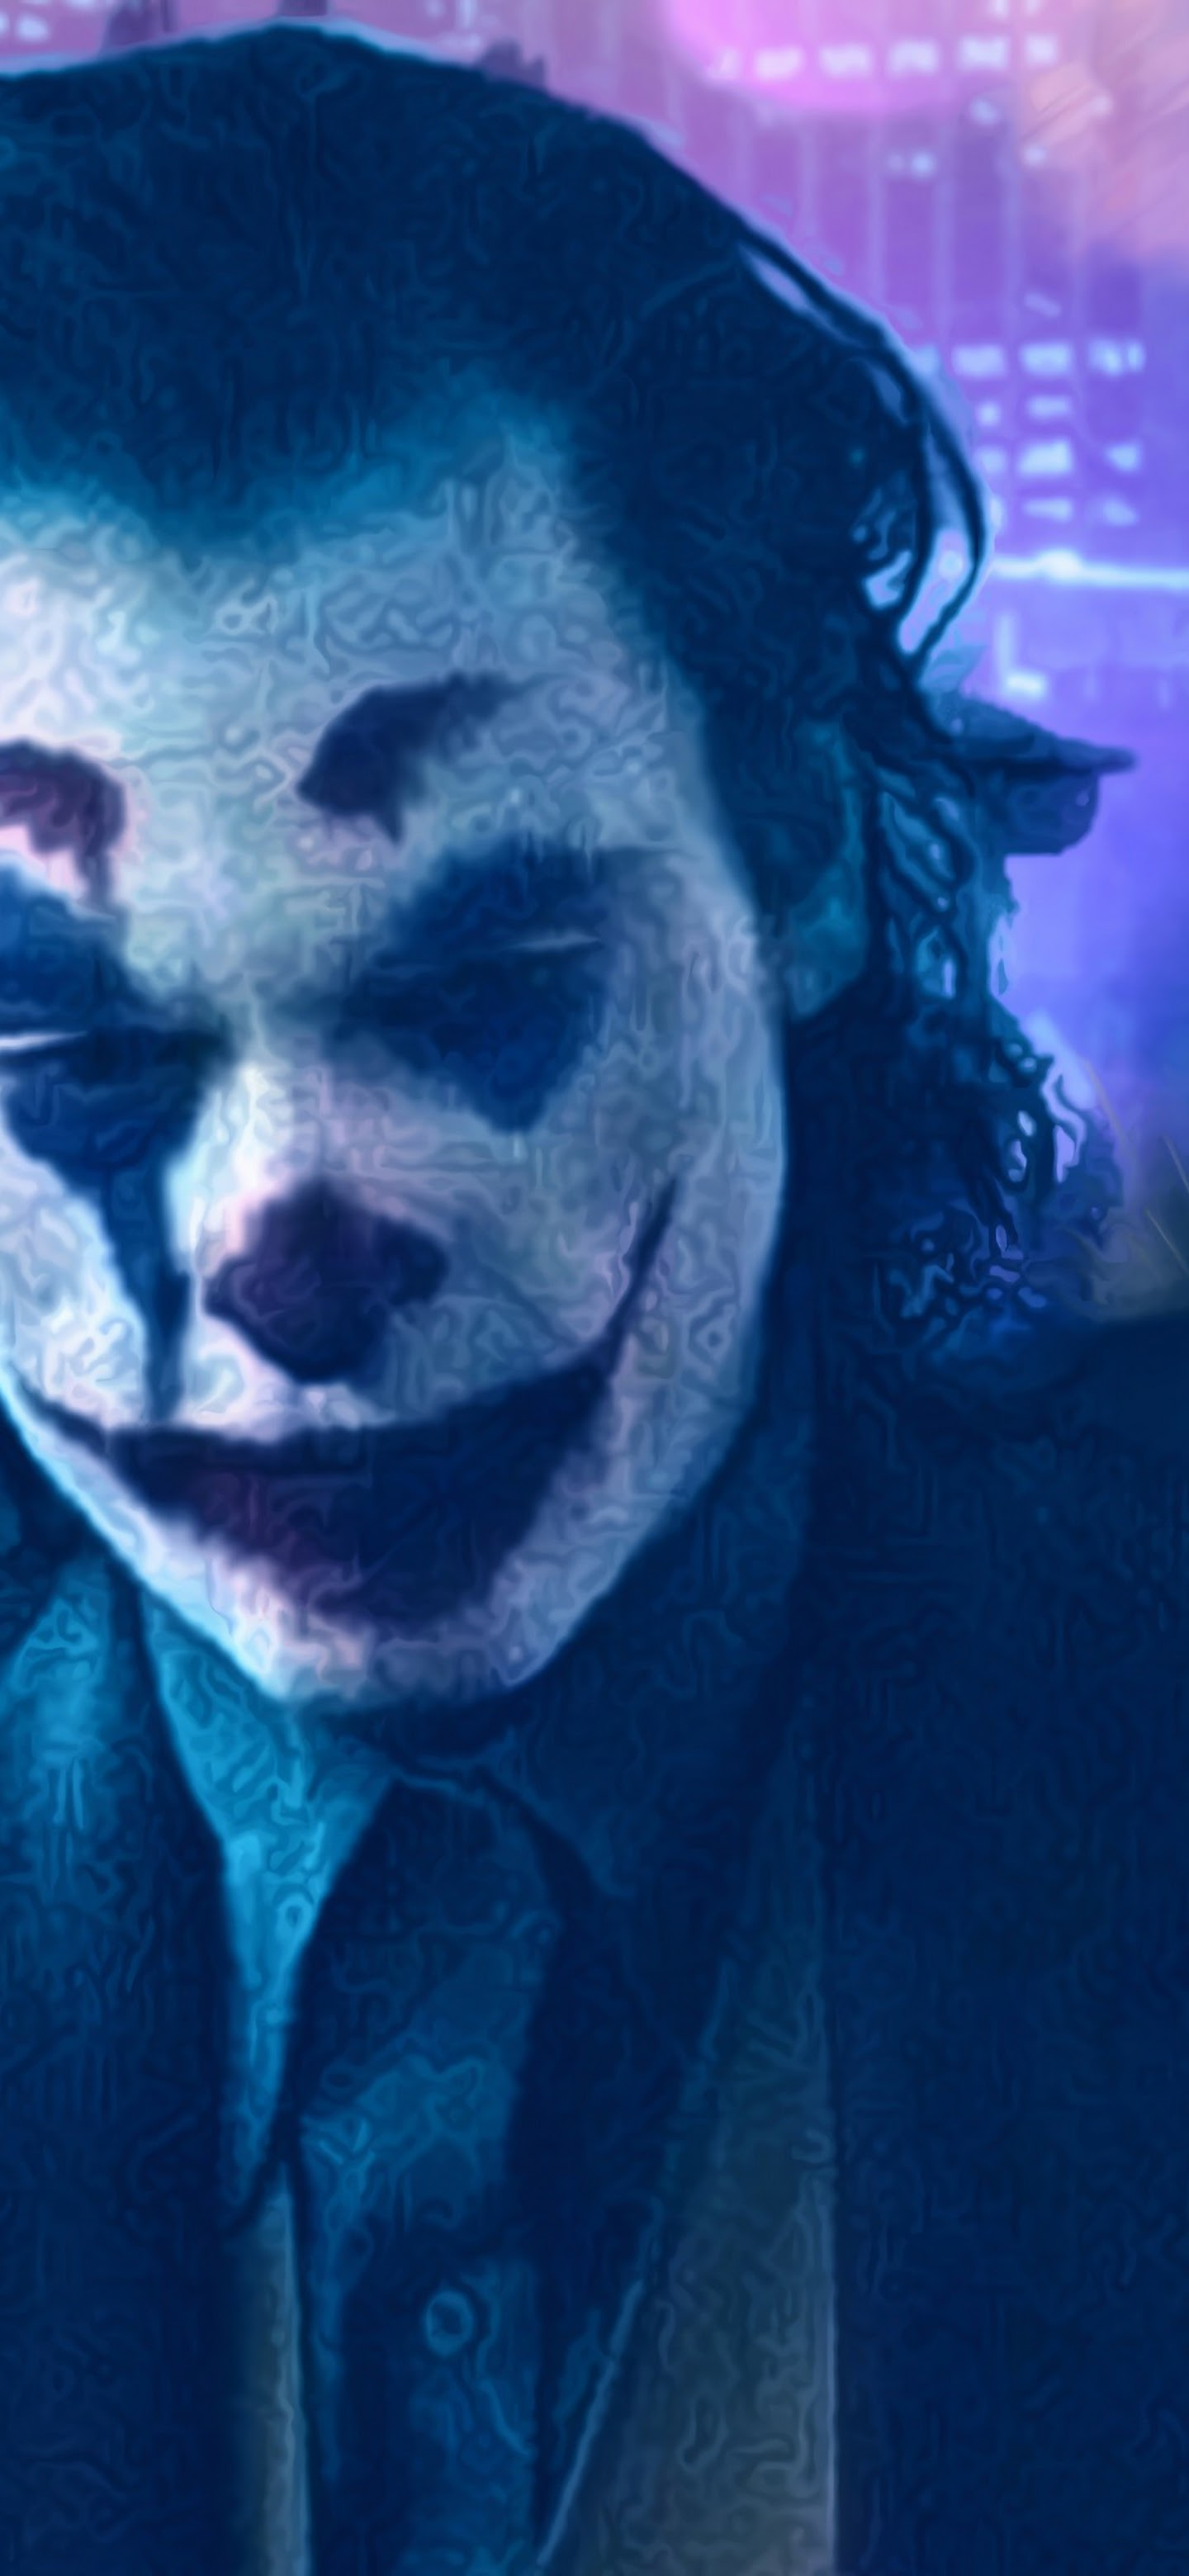 Joker 2019 Juaquin Phoenix 4k Wallpaper 4